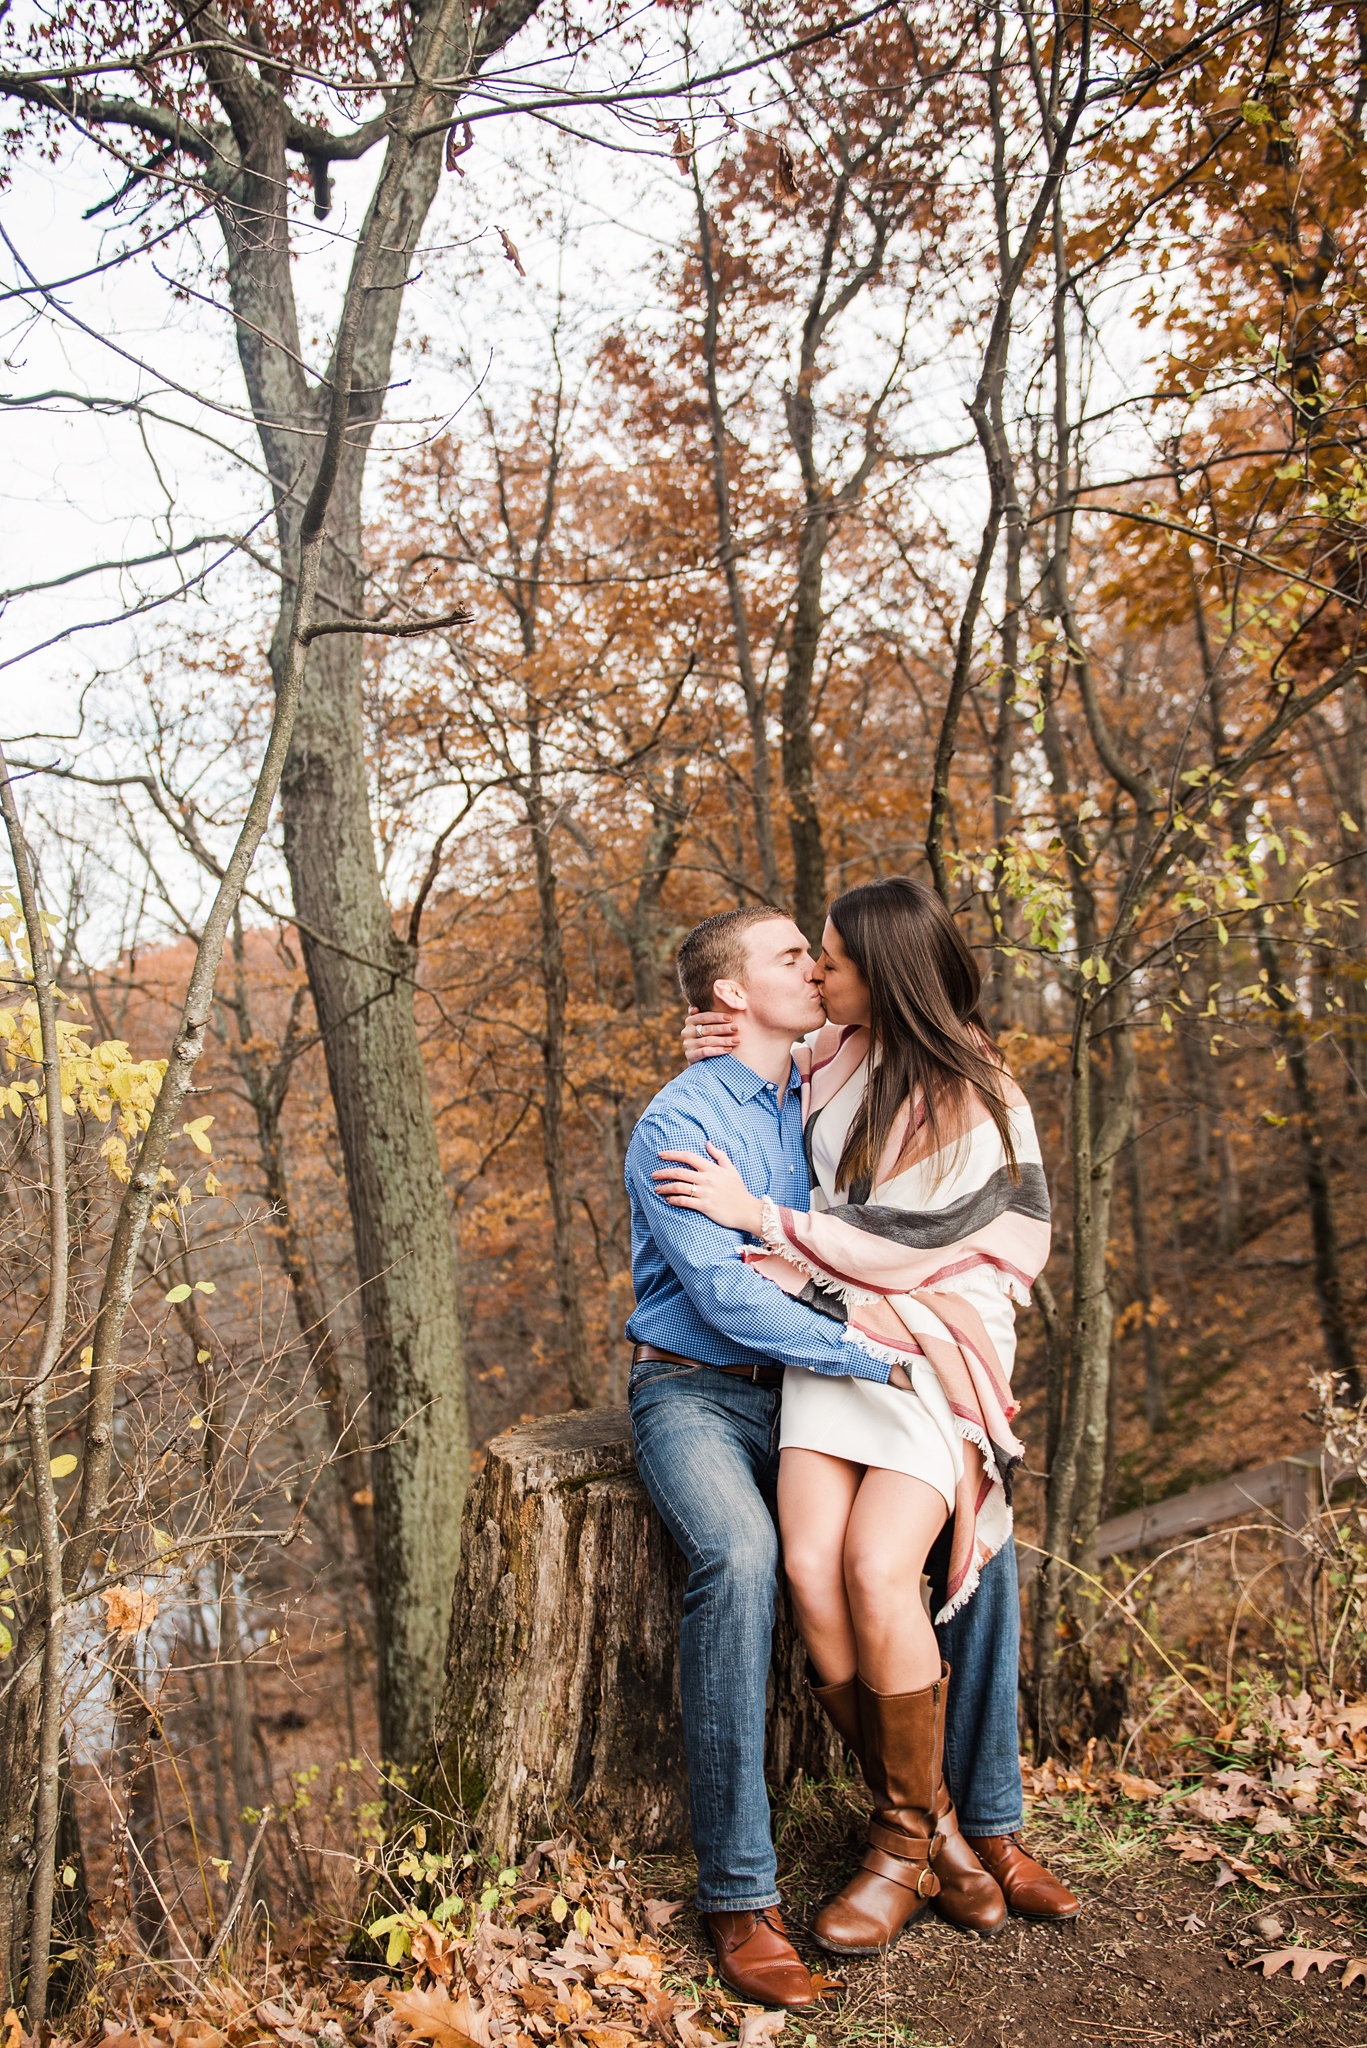 Mendon_Ponds_Park_Rochester_Engagement_Session_JILL_STUDIO_Rochester_NY_Photographer_DSC_0299.jpg